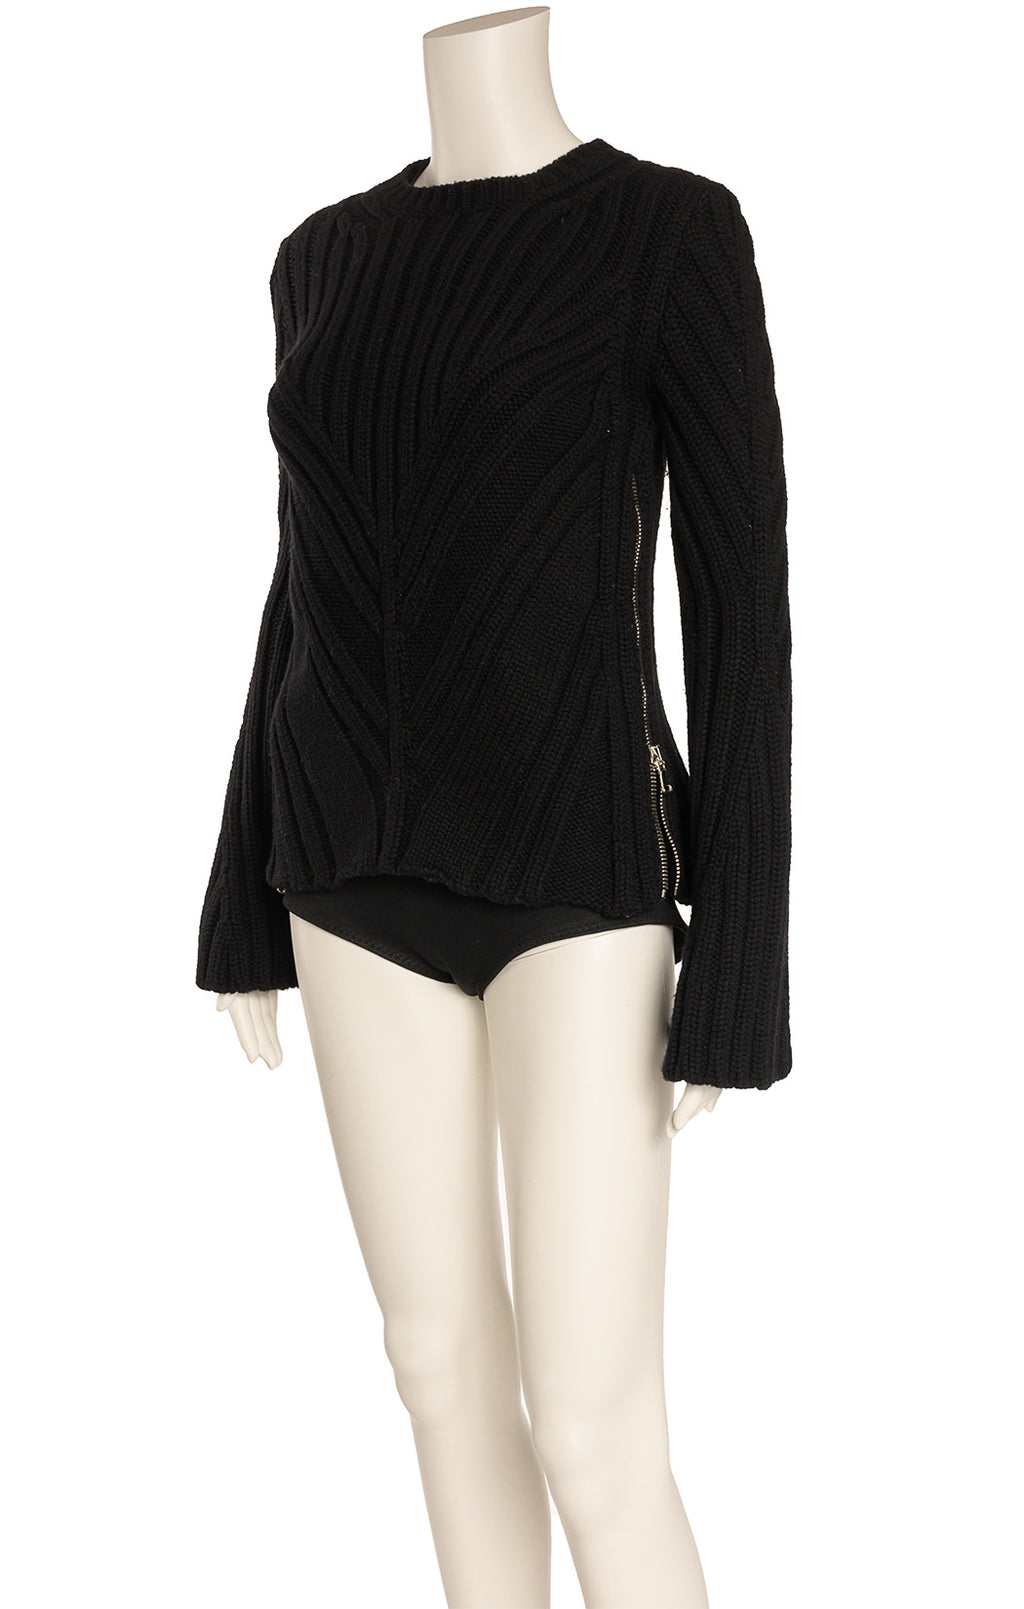 Front view of ALEXANDER MCQUEEN Sweater  Size: Small